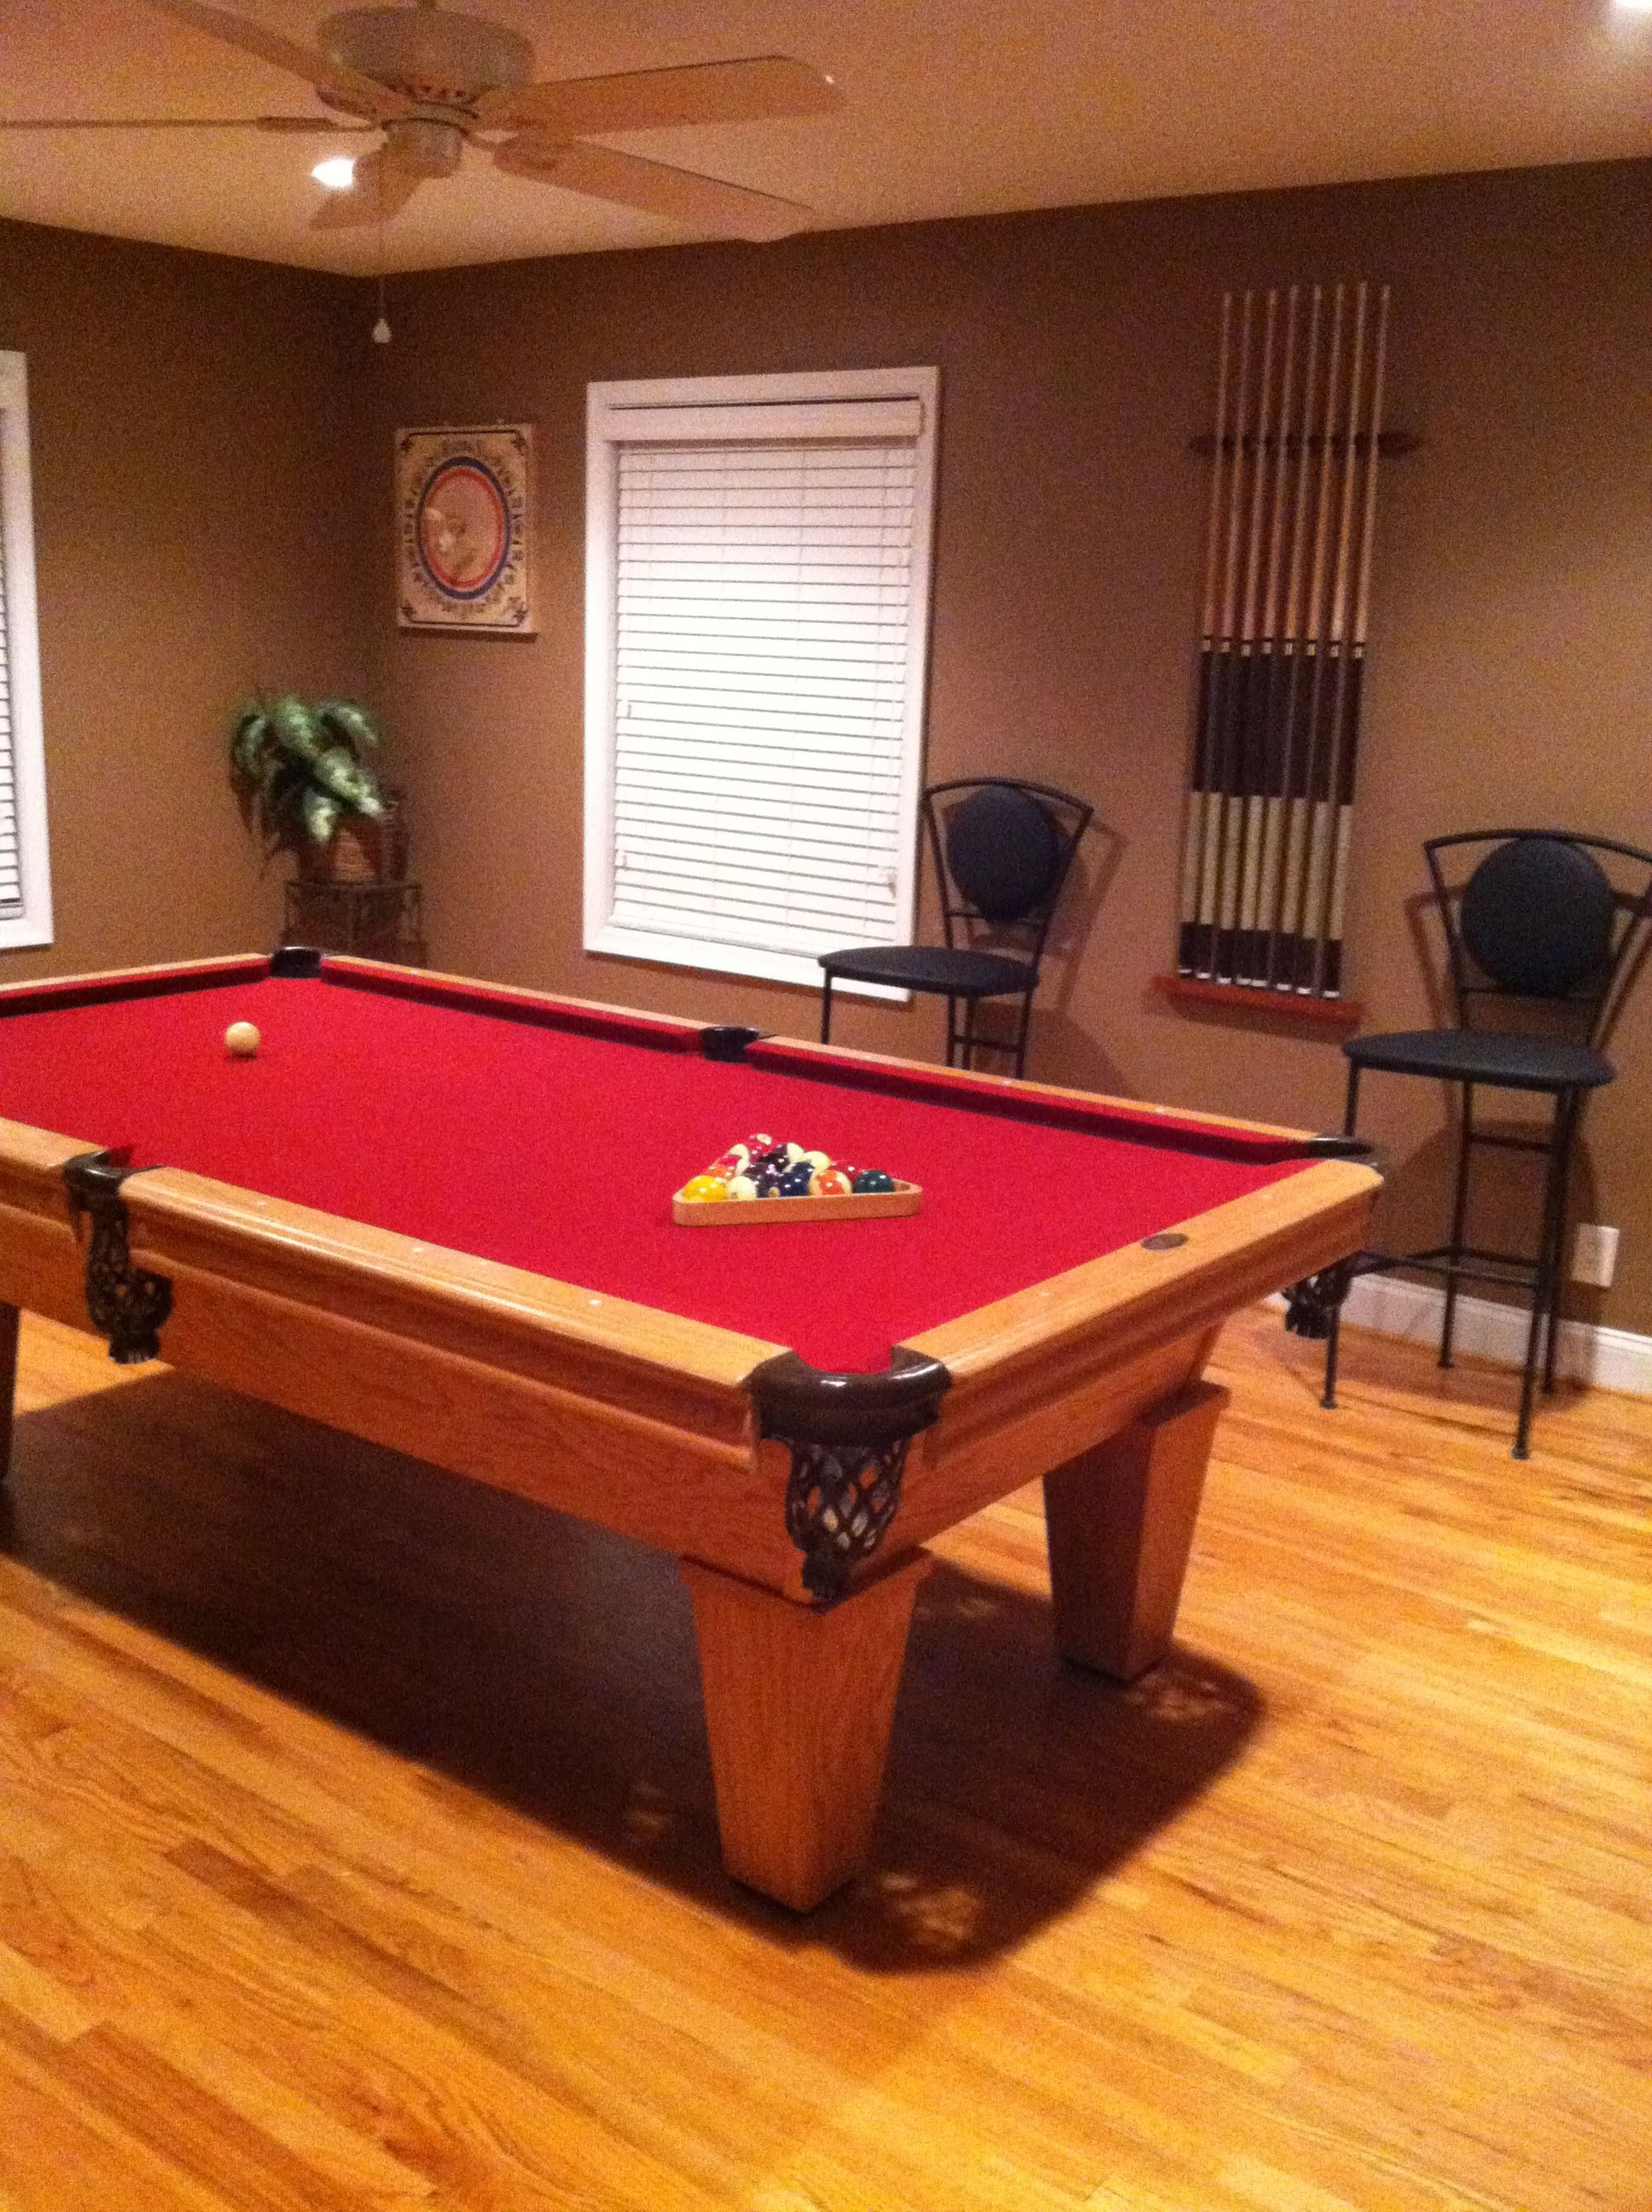 Pin By Tara Geisel On Home Ideas Small Game Rooms Pool Table